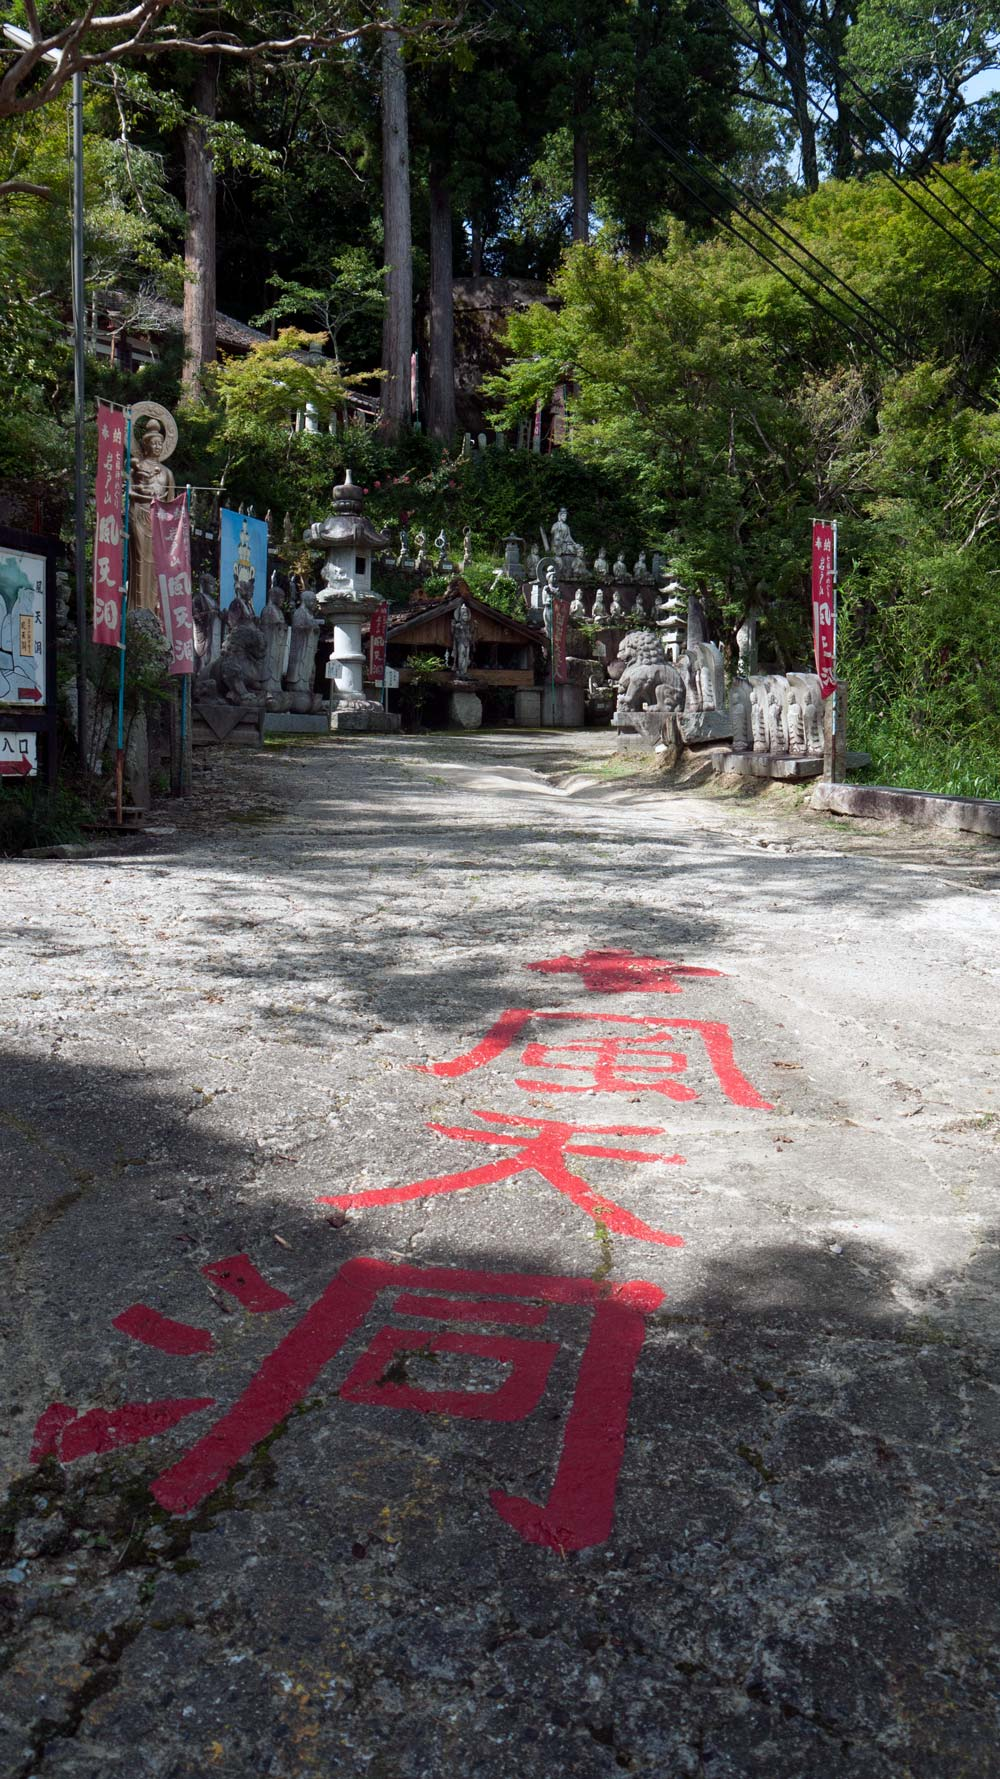 red kanji on the ground spelling futendo